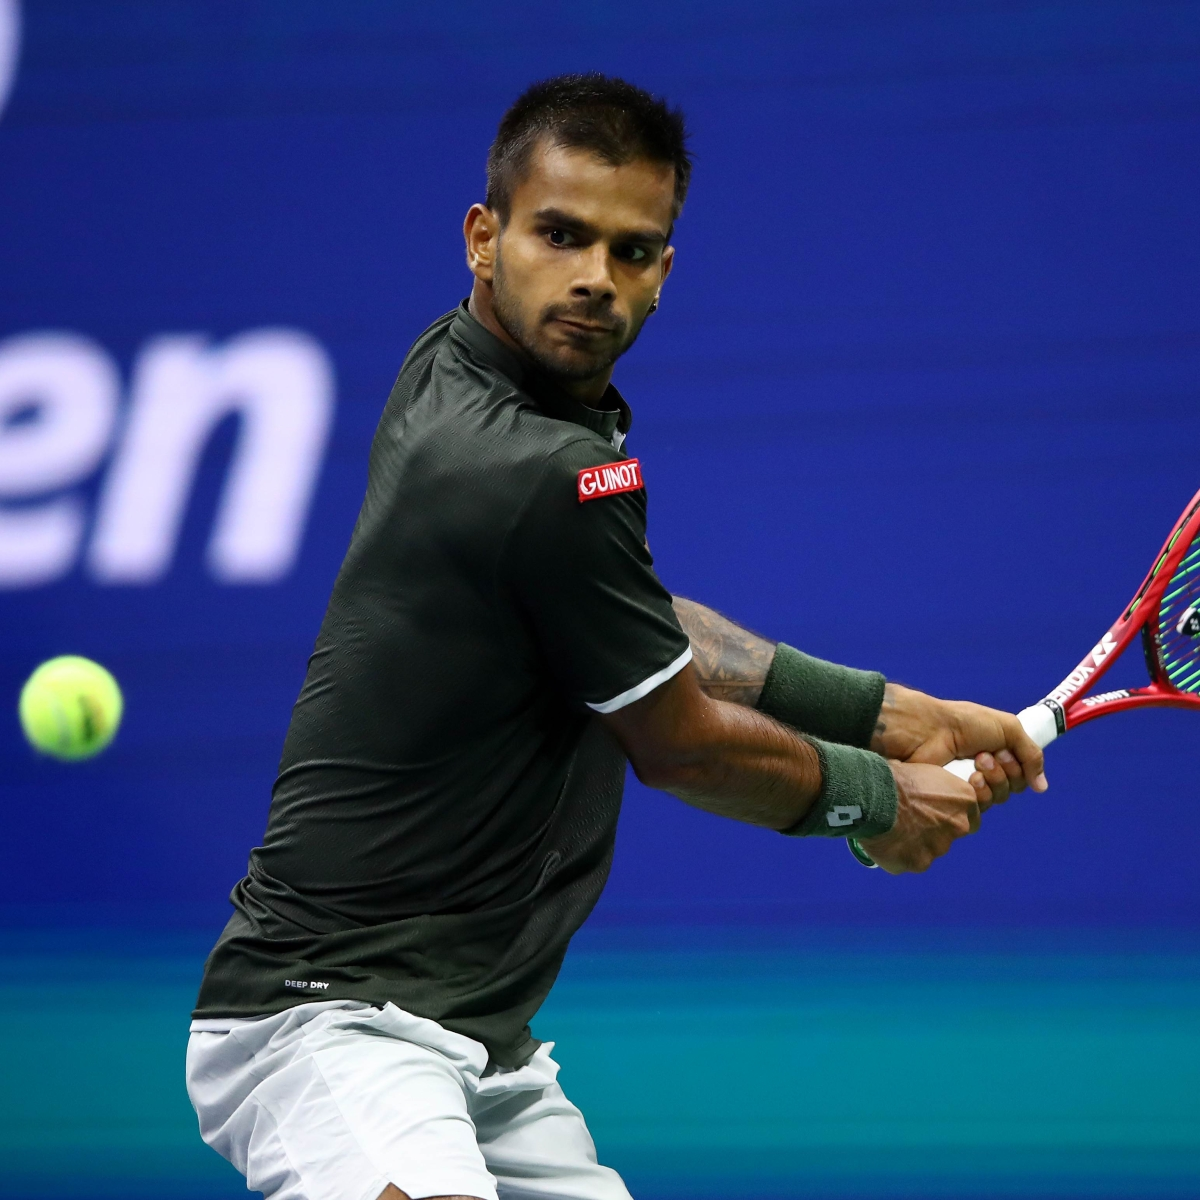 Aiming to break into top-80 for Olympic berth: Sumit Nagal